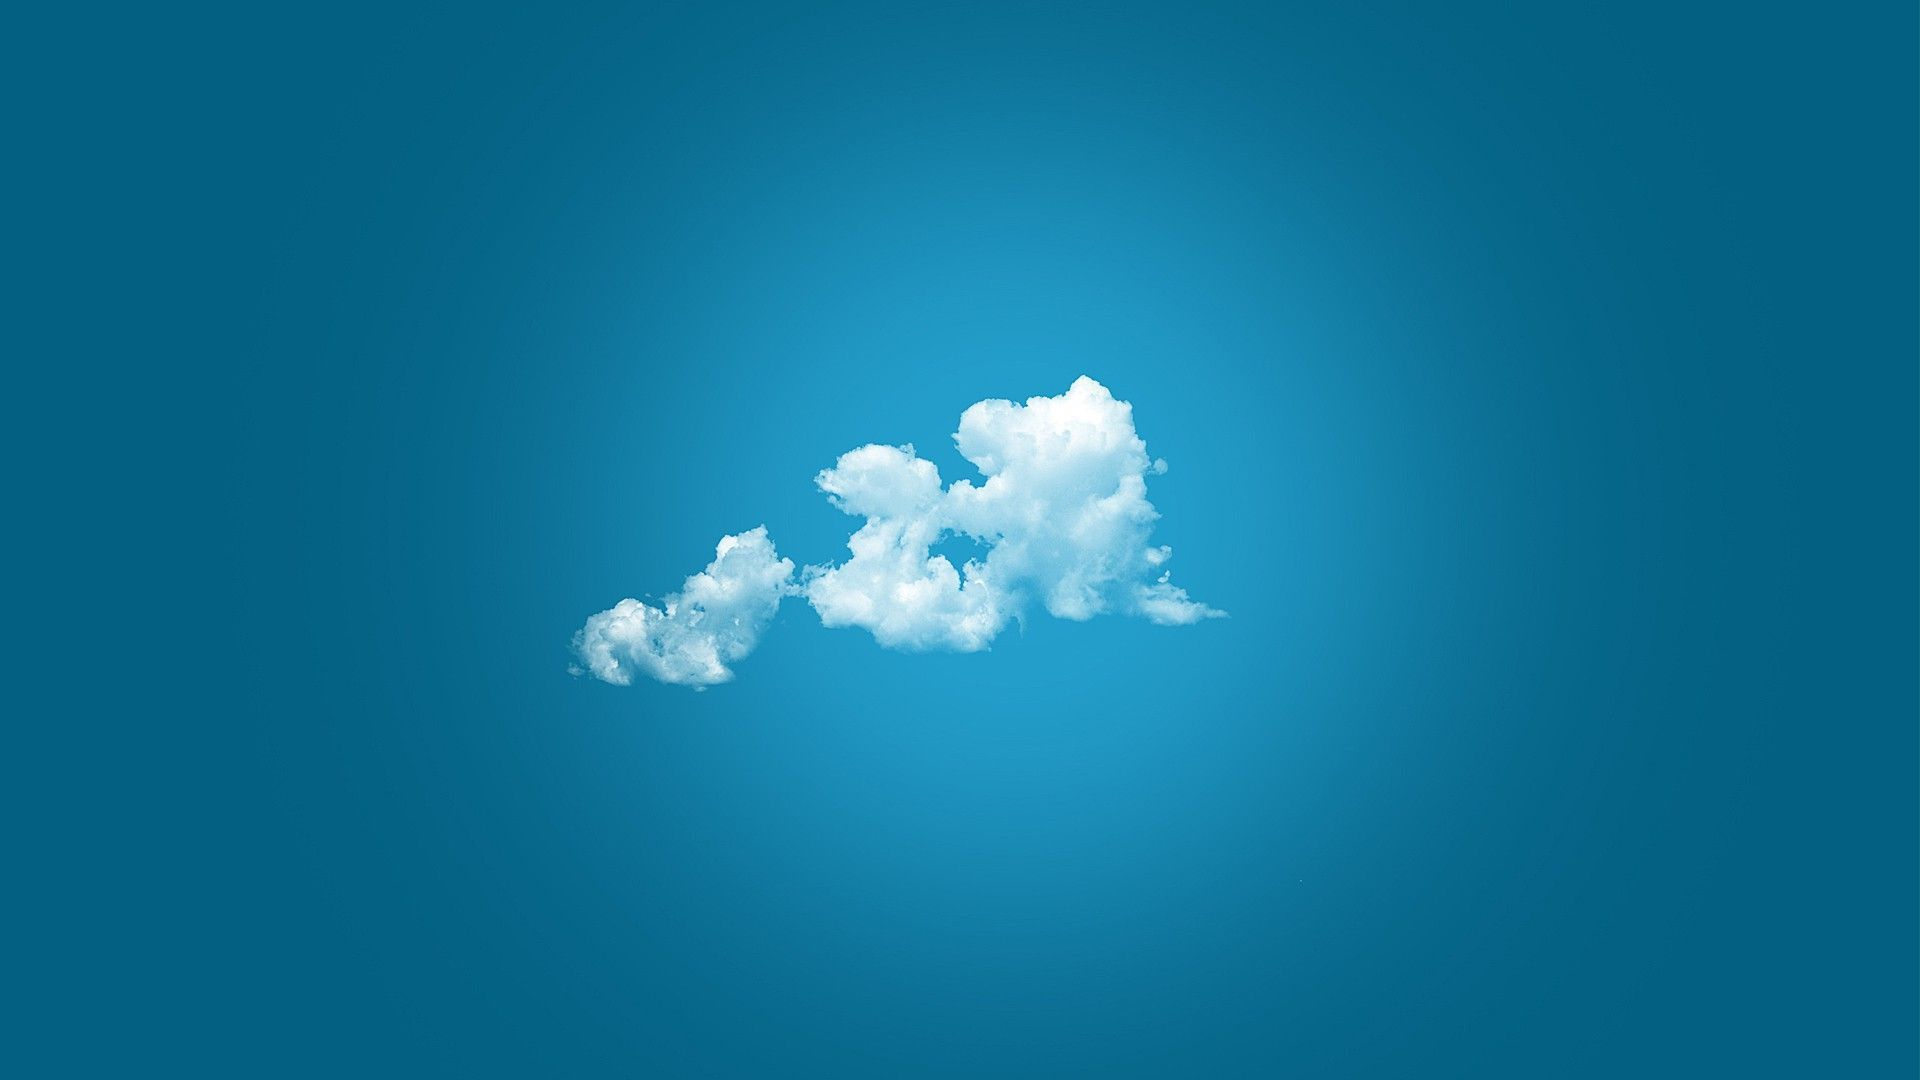 White fluffy cloud Wallpaper #4682 1287